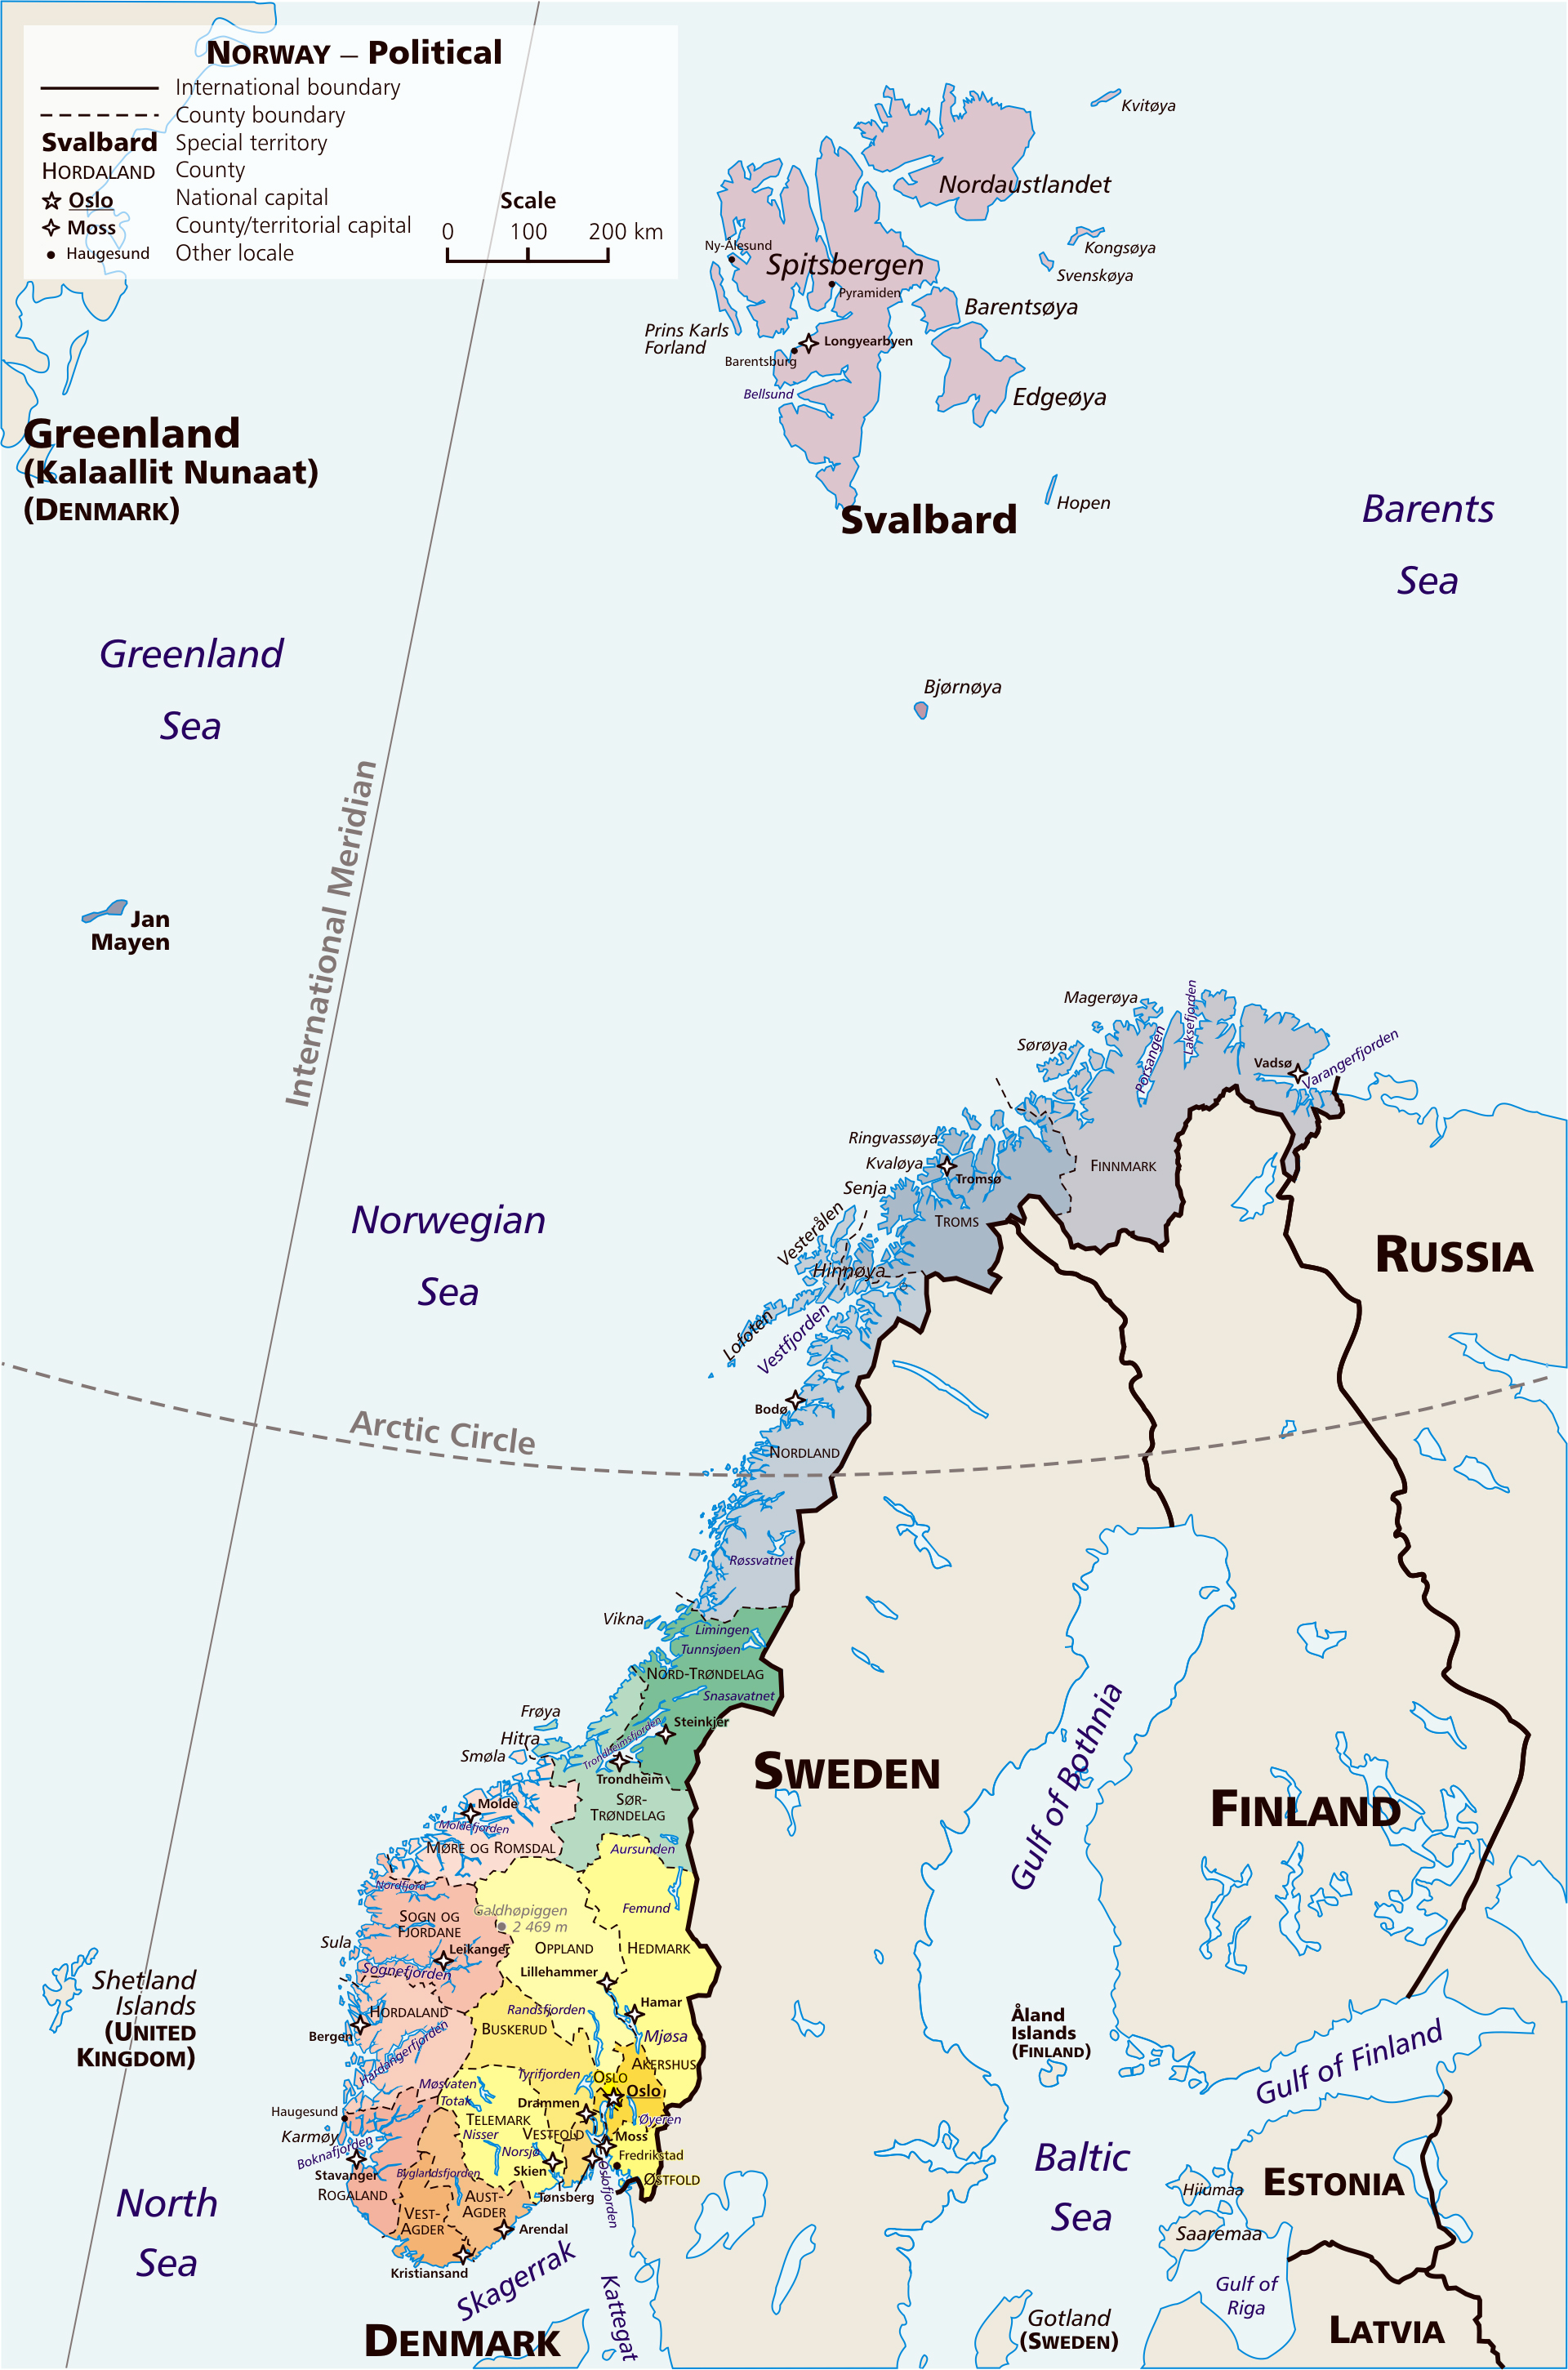 Norway On Map Of Europe.Large Detailed Political And Administrative Map Of Norway With Major